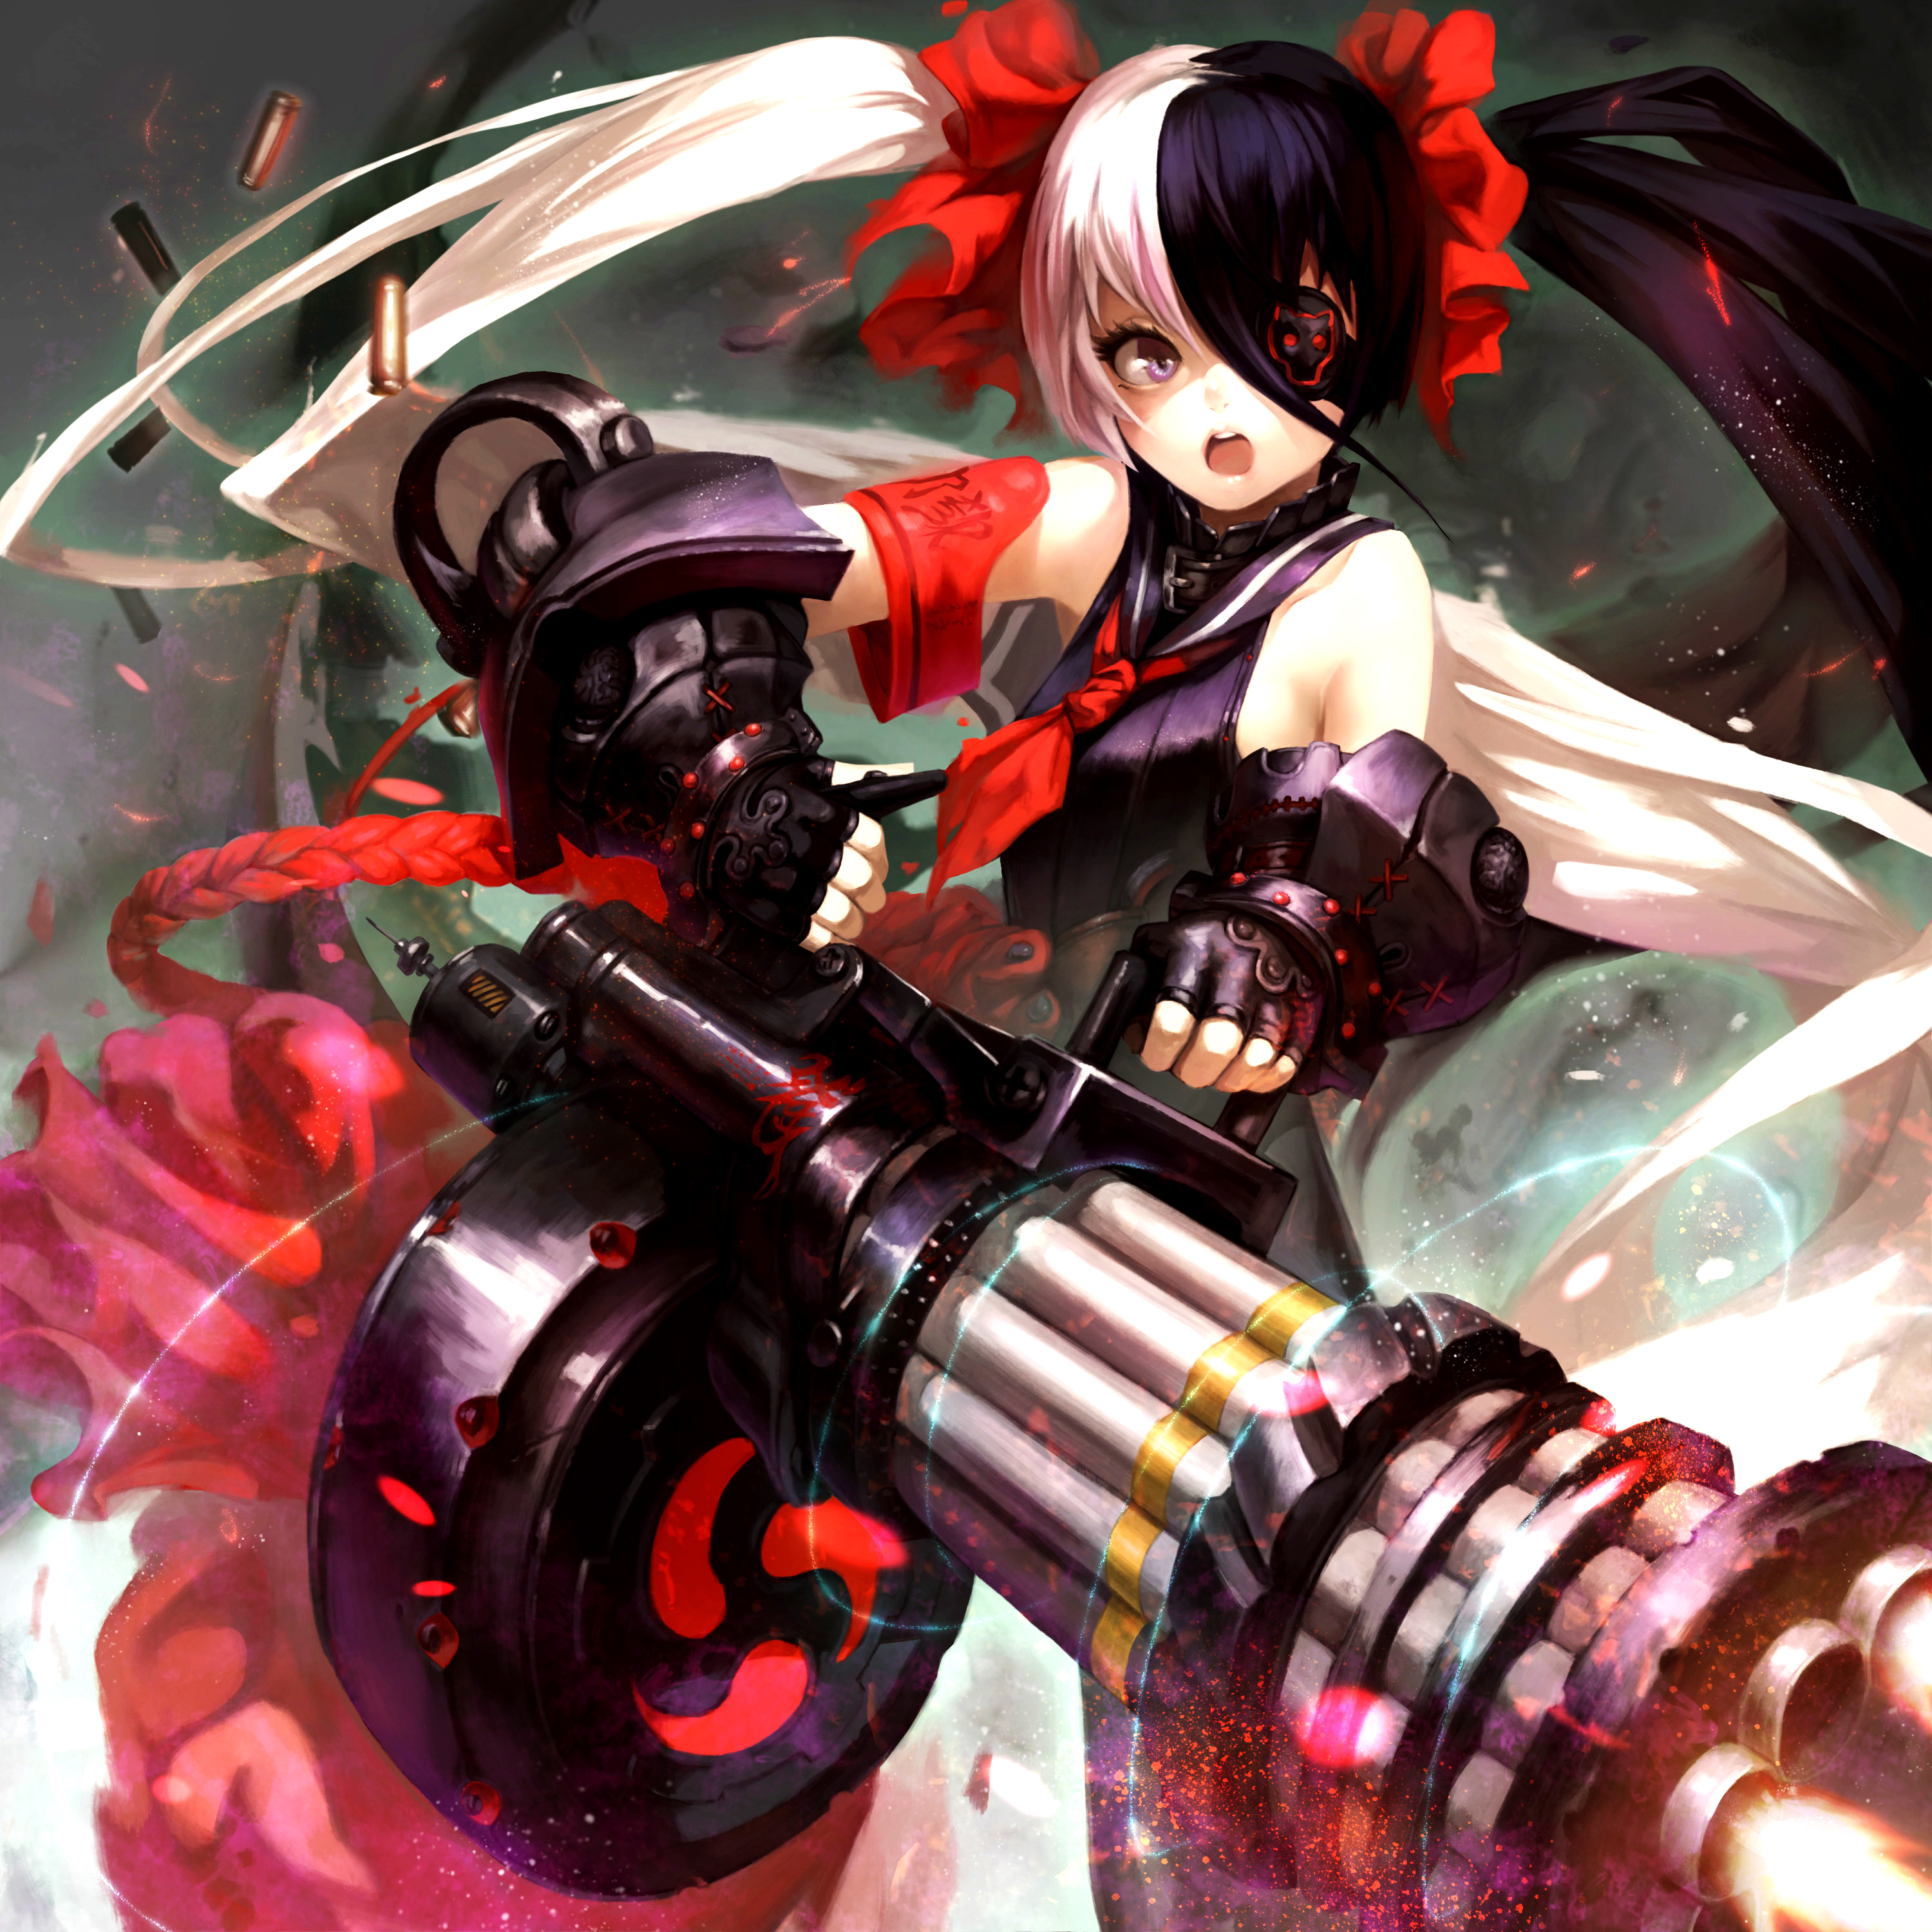 Blade N Soul Anime Characters : Picture of the day pho hwa ran randomness thing